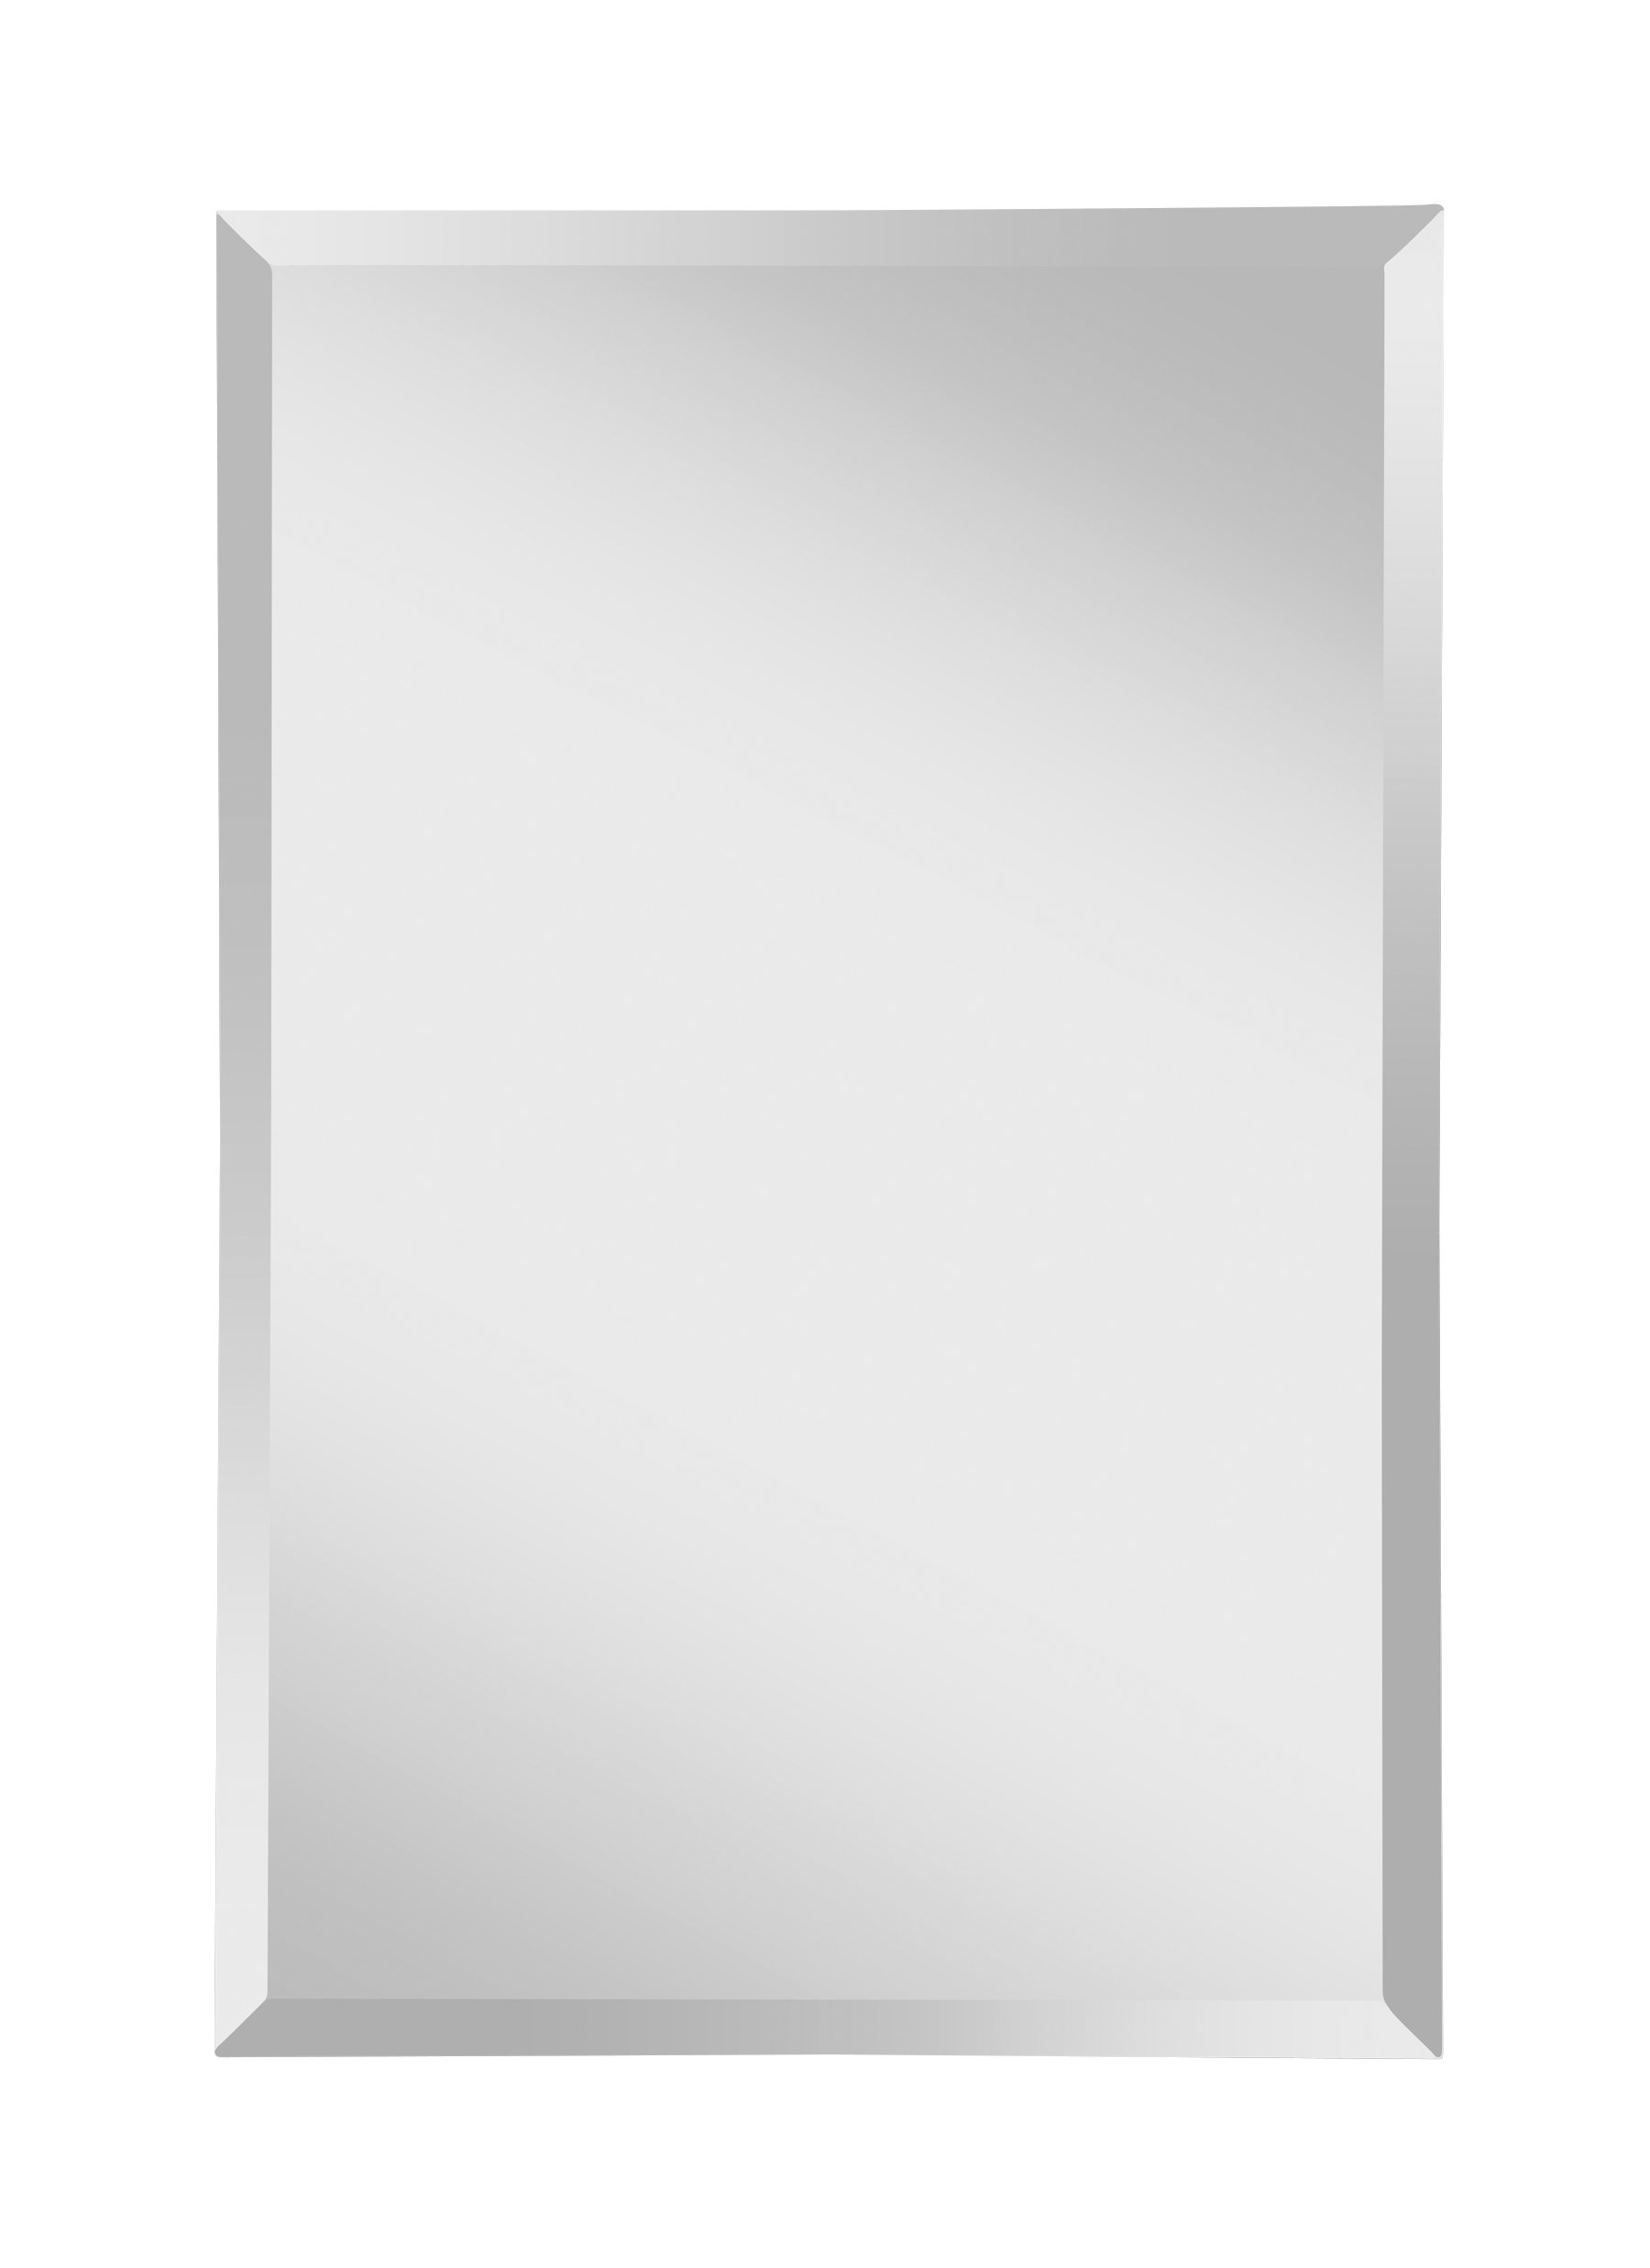 Gaunts Earthcott Modern & Contemporary Beveled Accent Mirror With Regard To Gaunts Earthcott Wall Mirrors (View 5 of 20)